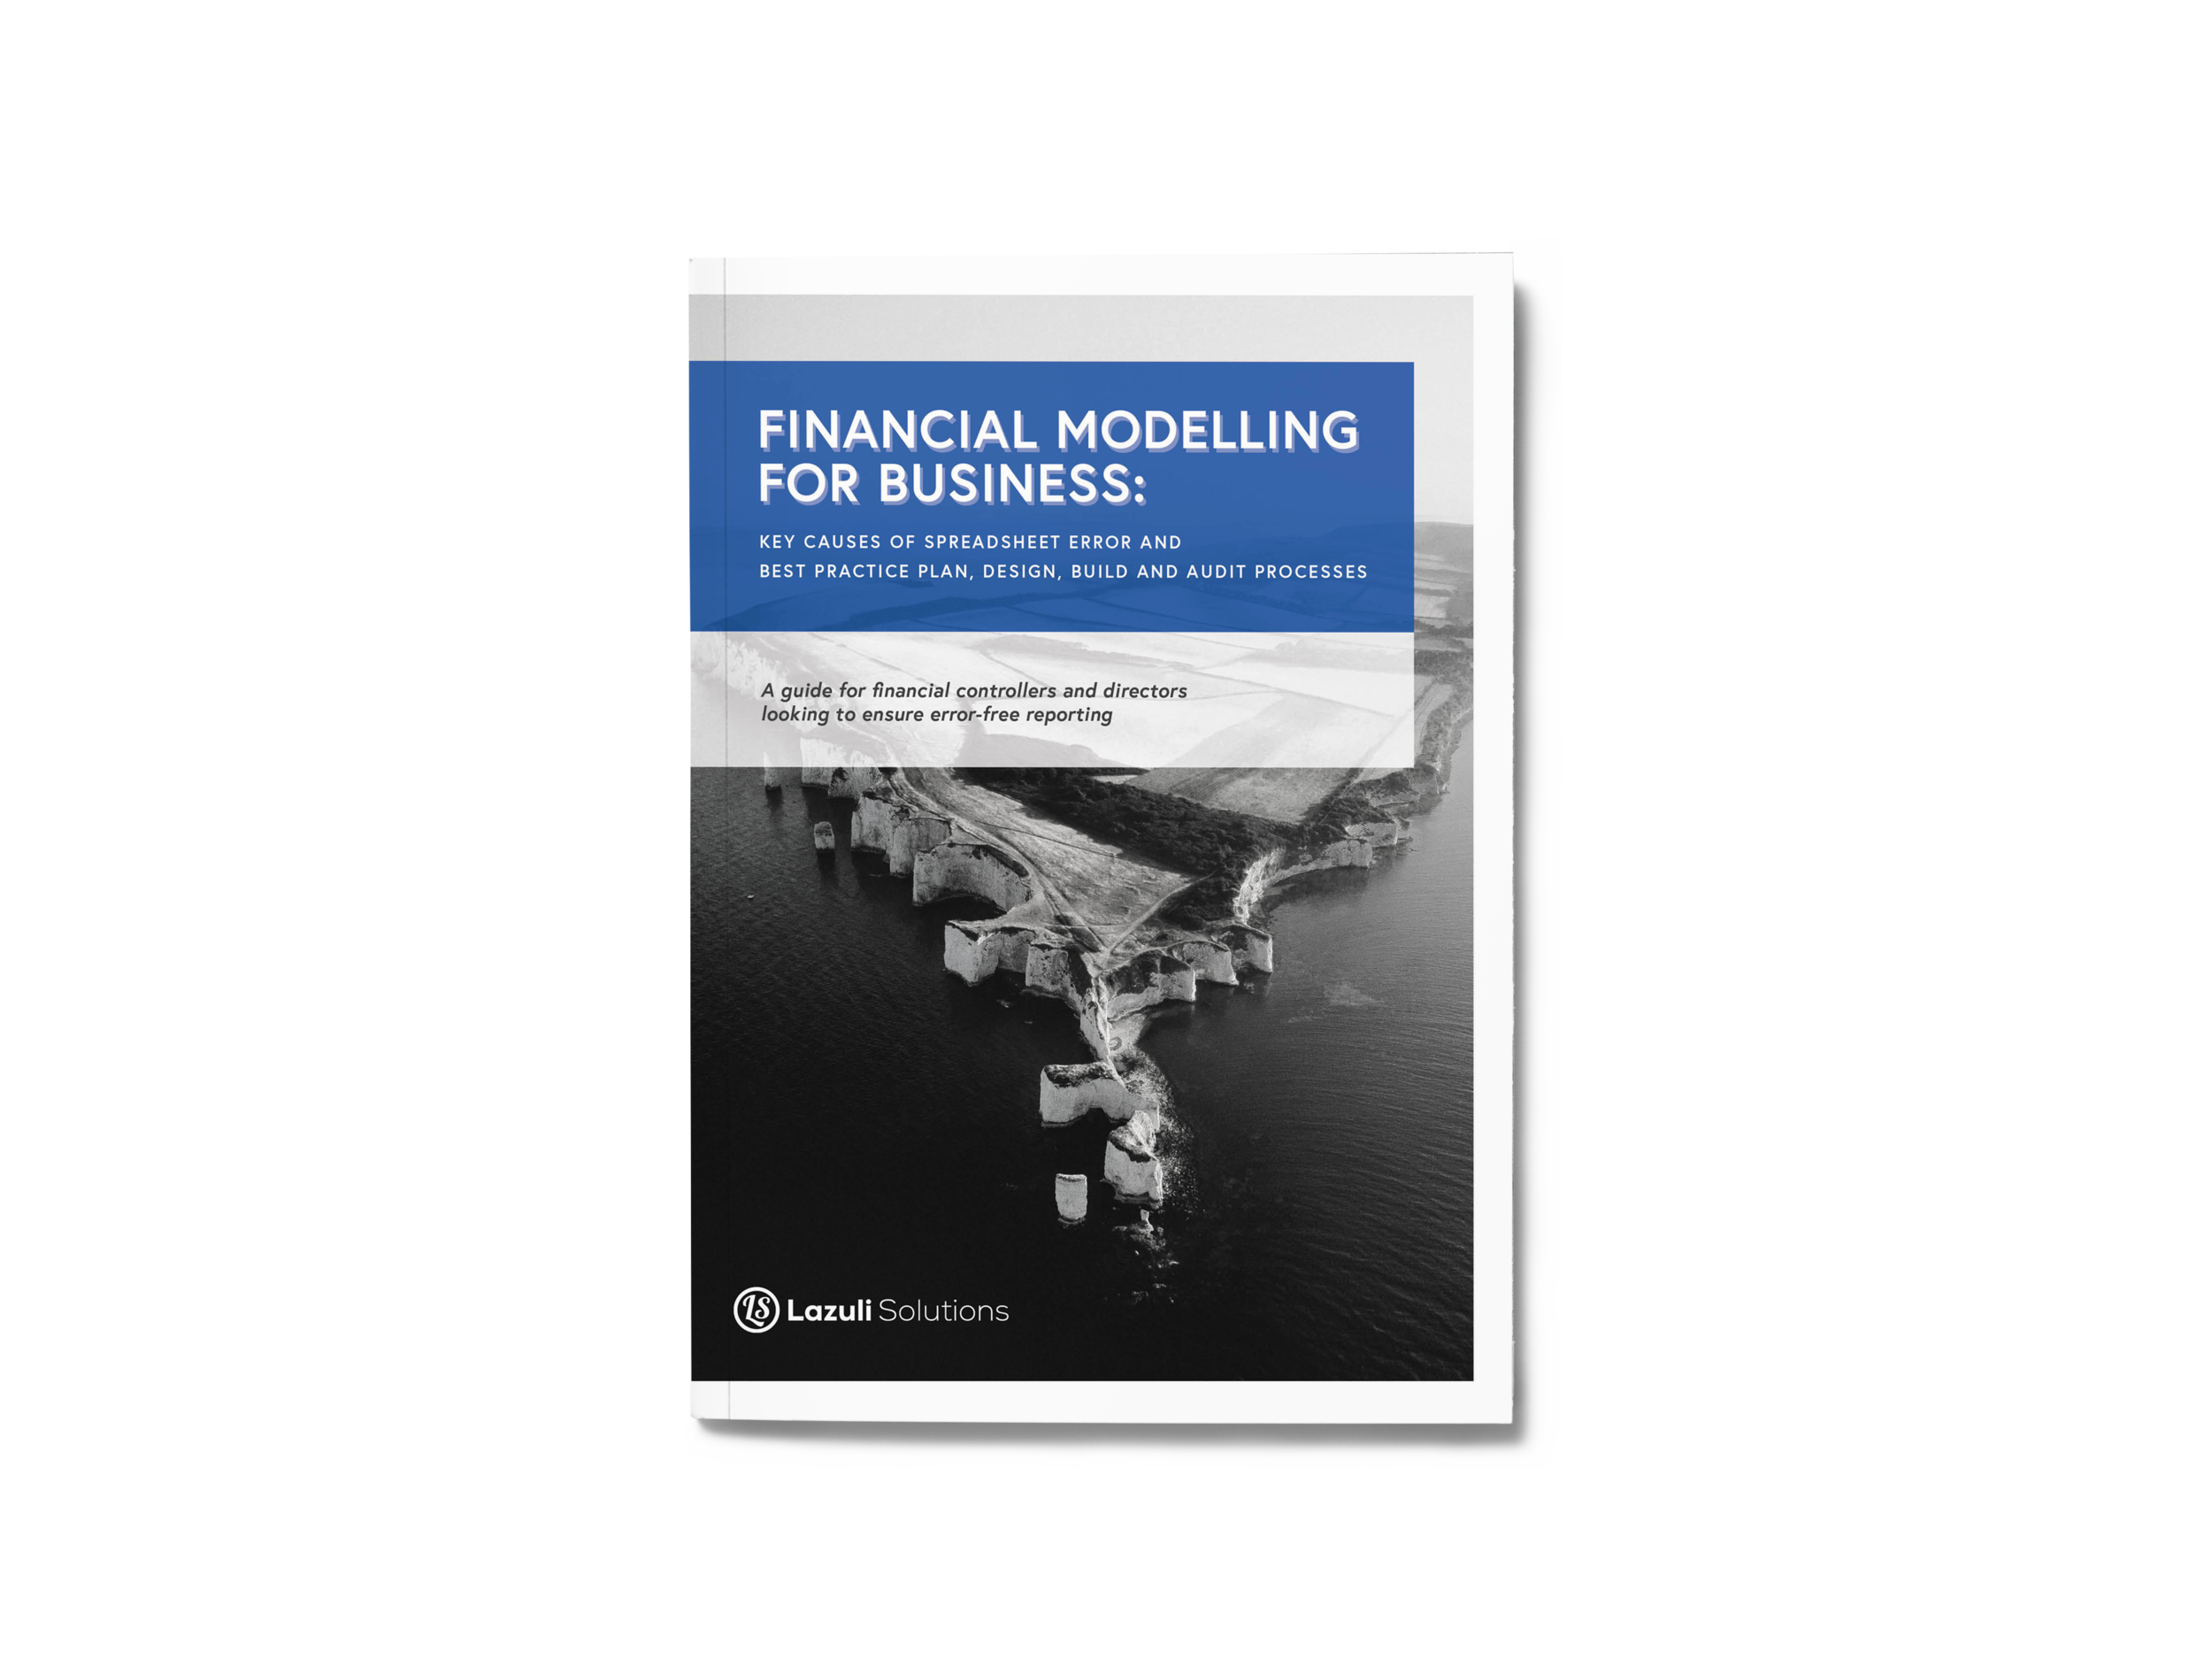 FINANCIAL MODELLING FOR BUSINESS: KEY CAUSES OF SPREADSHEET ERROR AND BEST PRACTICE PLAN, DESIGN, BUILD AND AUDIT PROCESSES